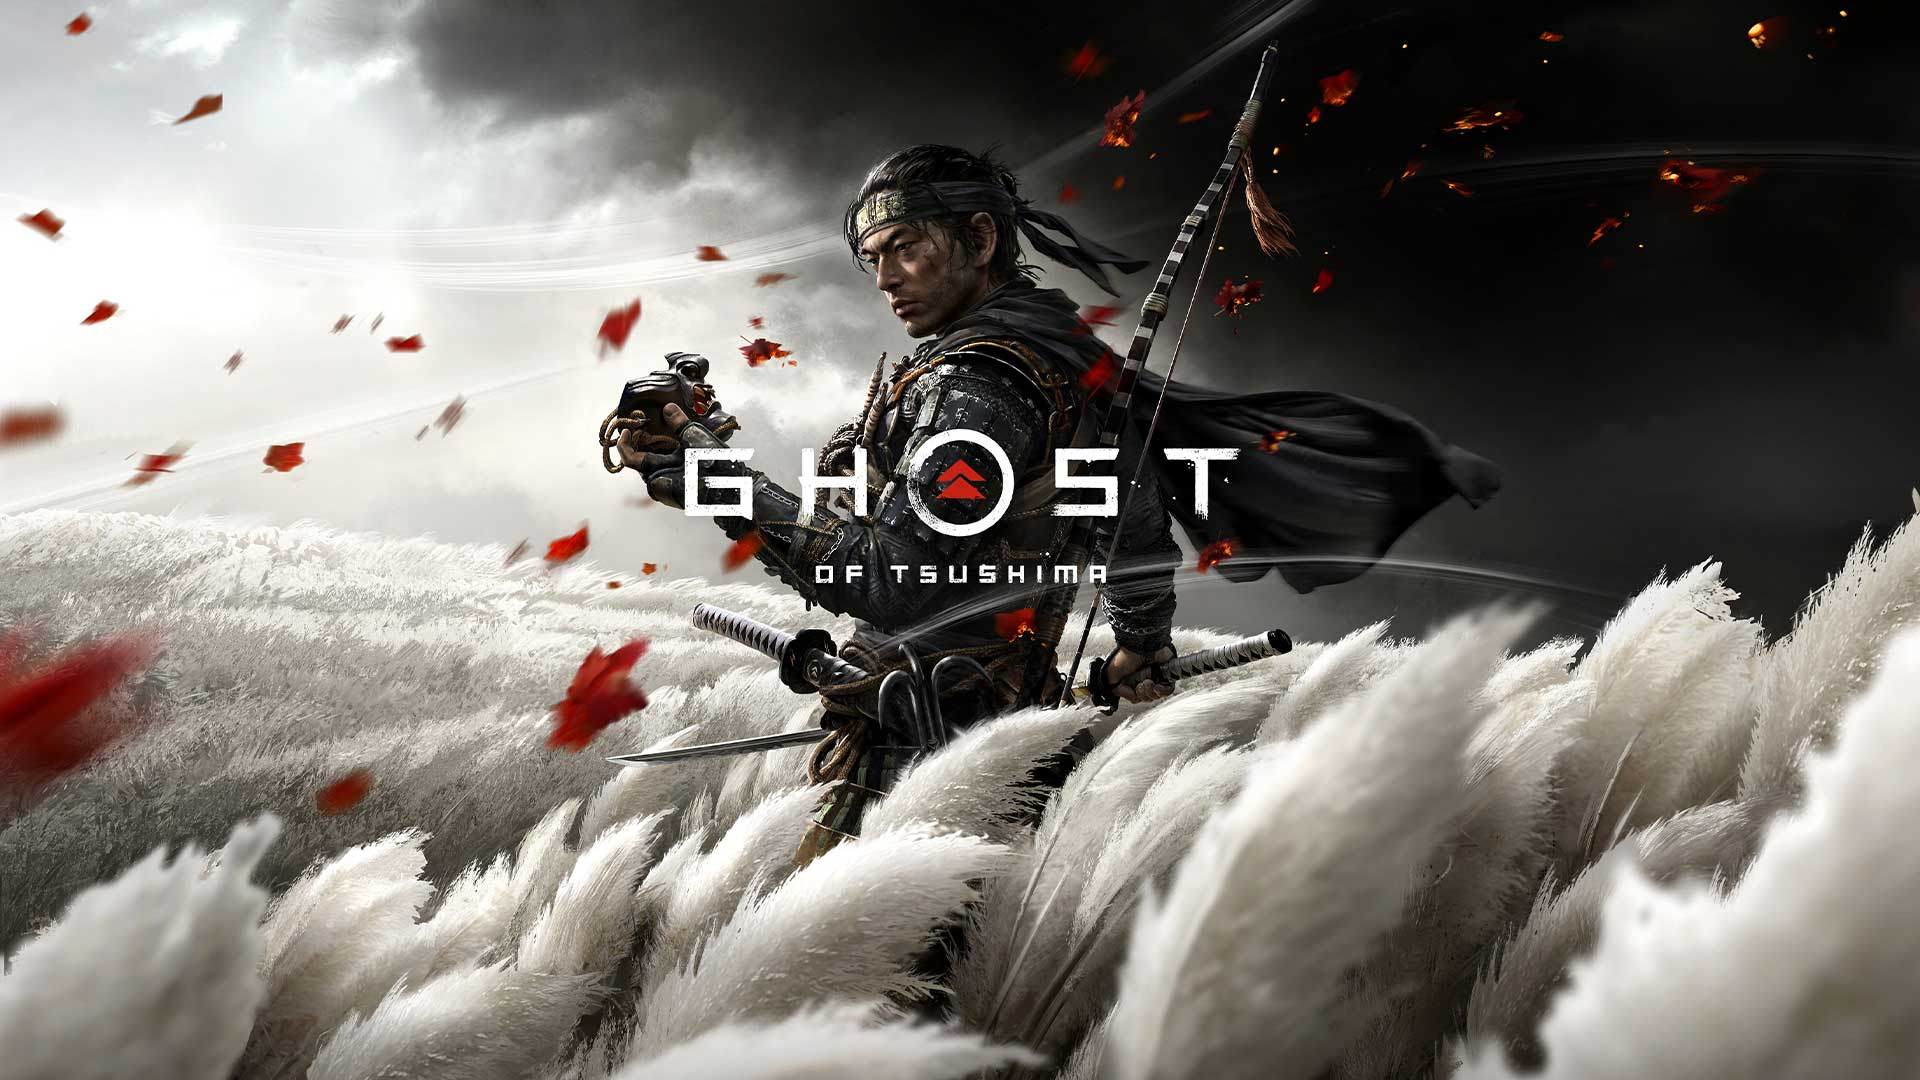 ghost of tsushima coverart